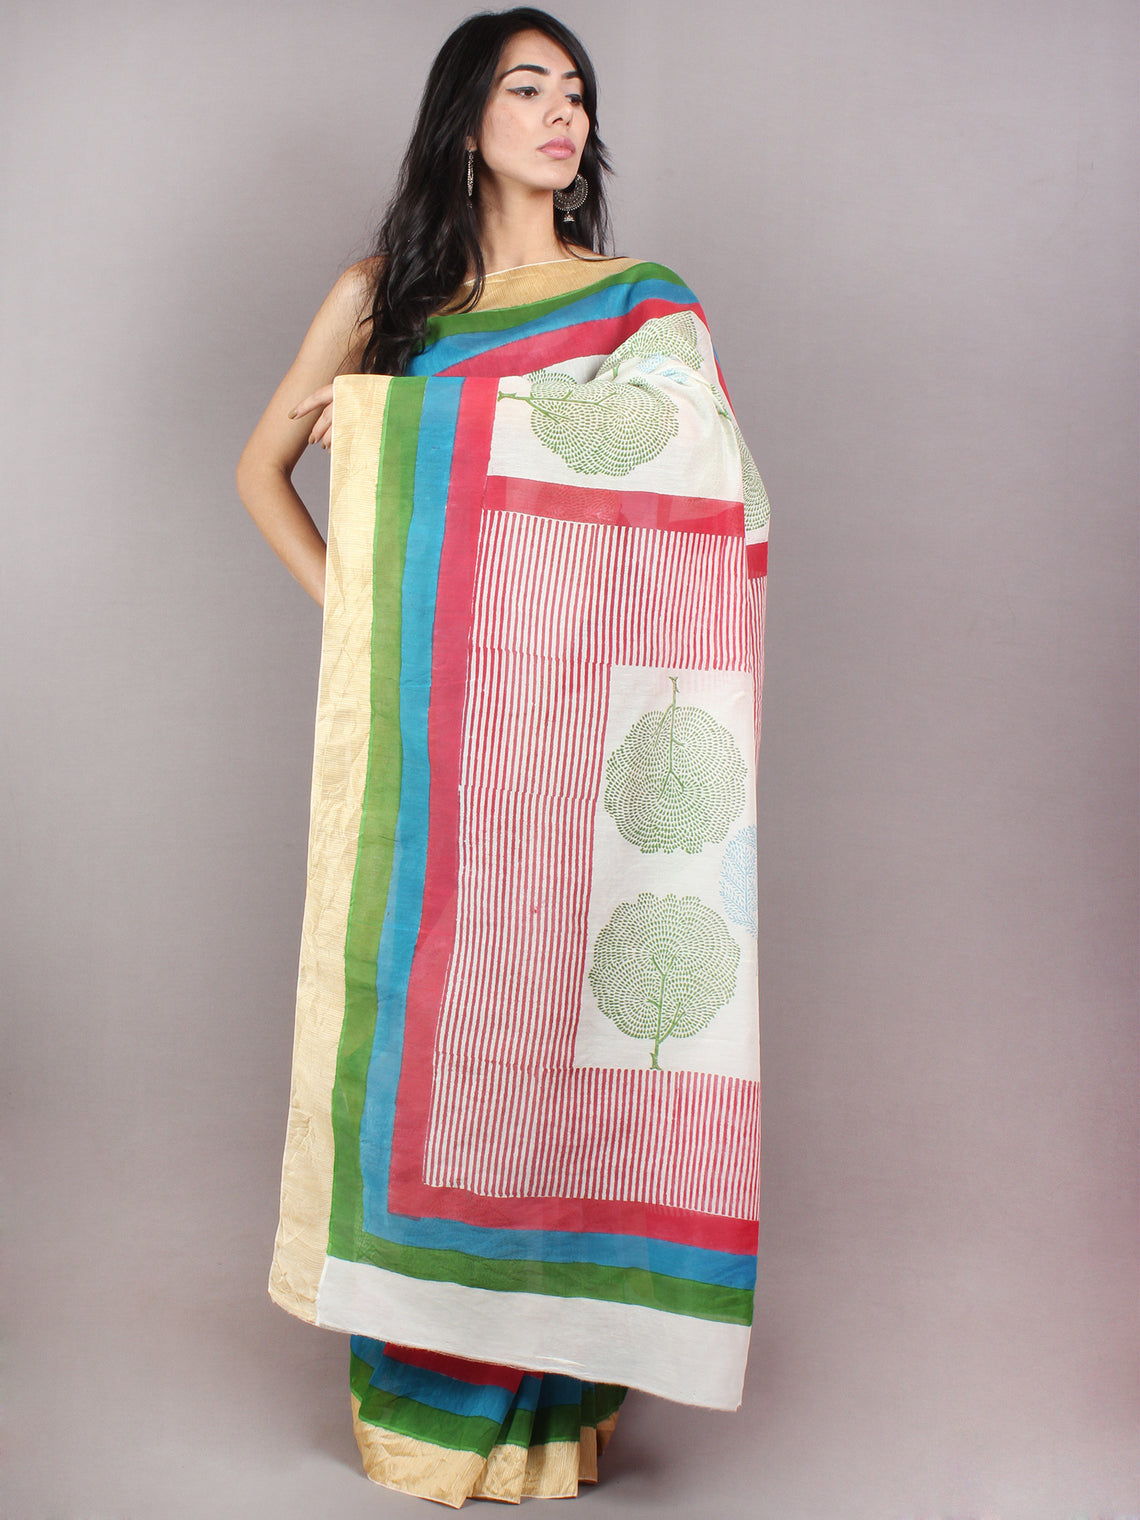 Ivory Green Blue Hand Block Printed in Natural Colors Chanderi Saree With Geecha Border - S03170687